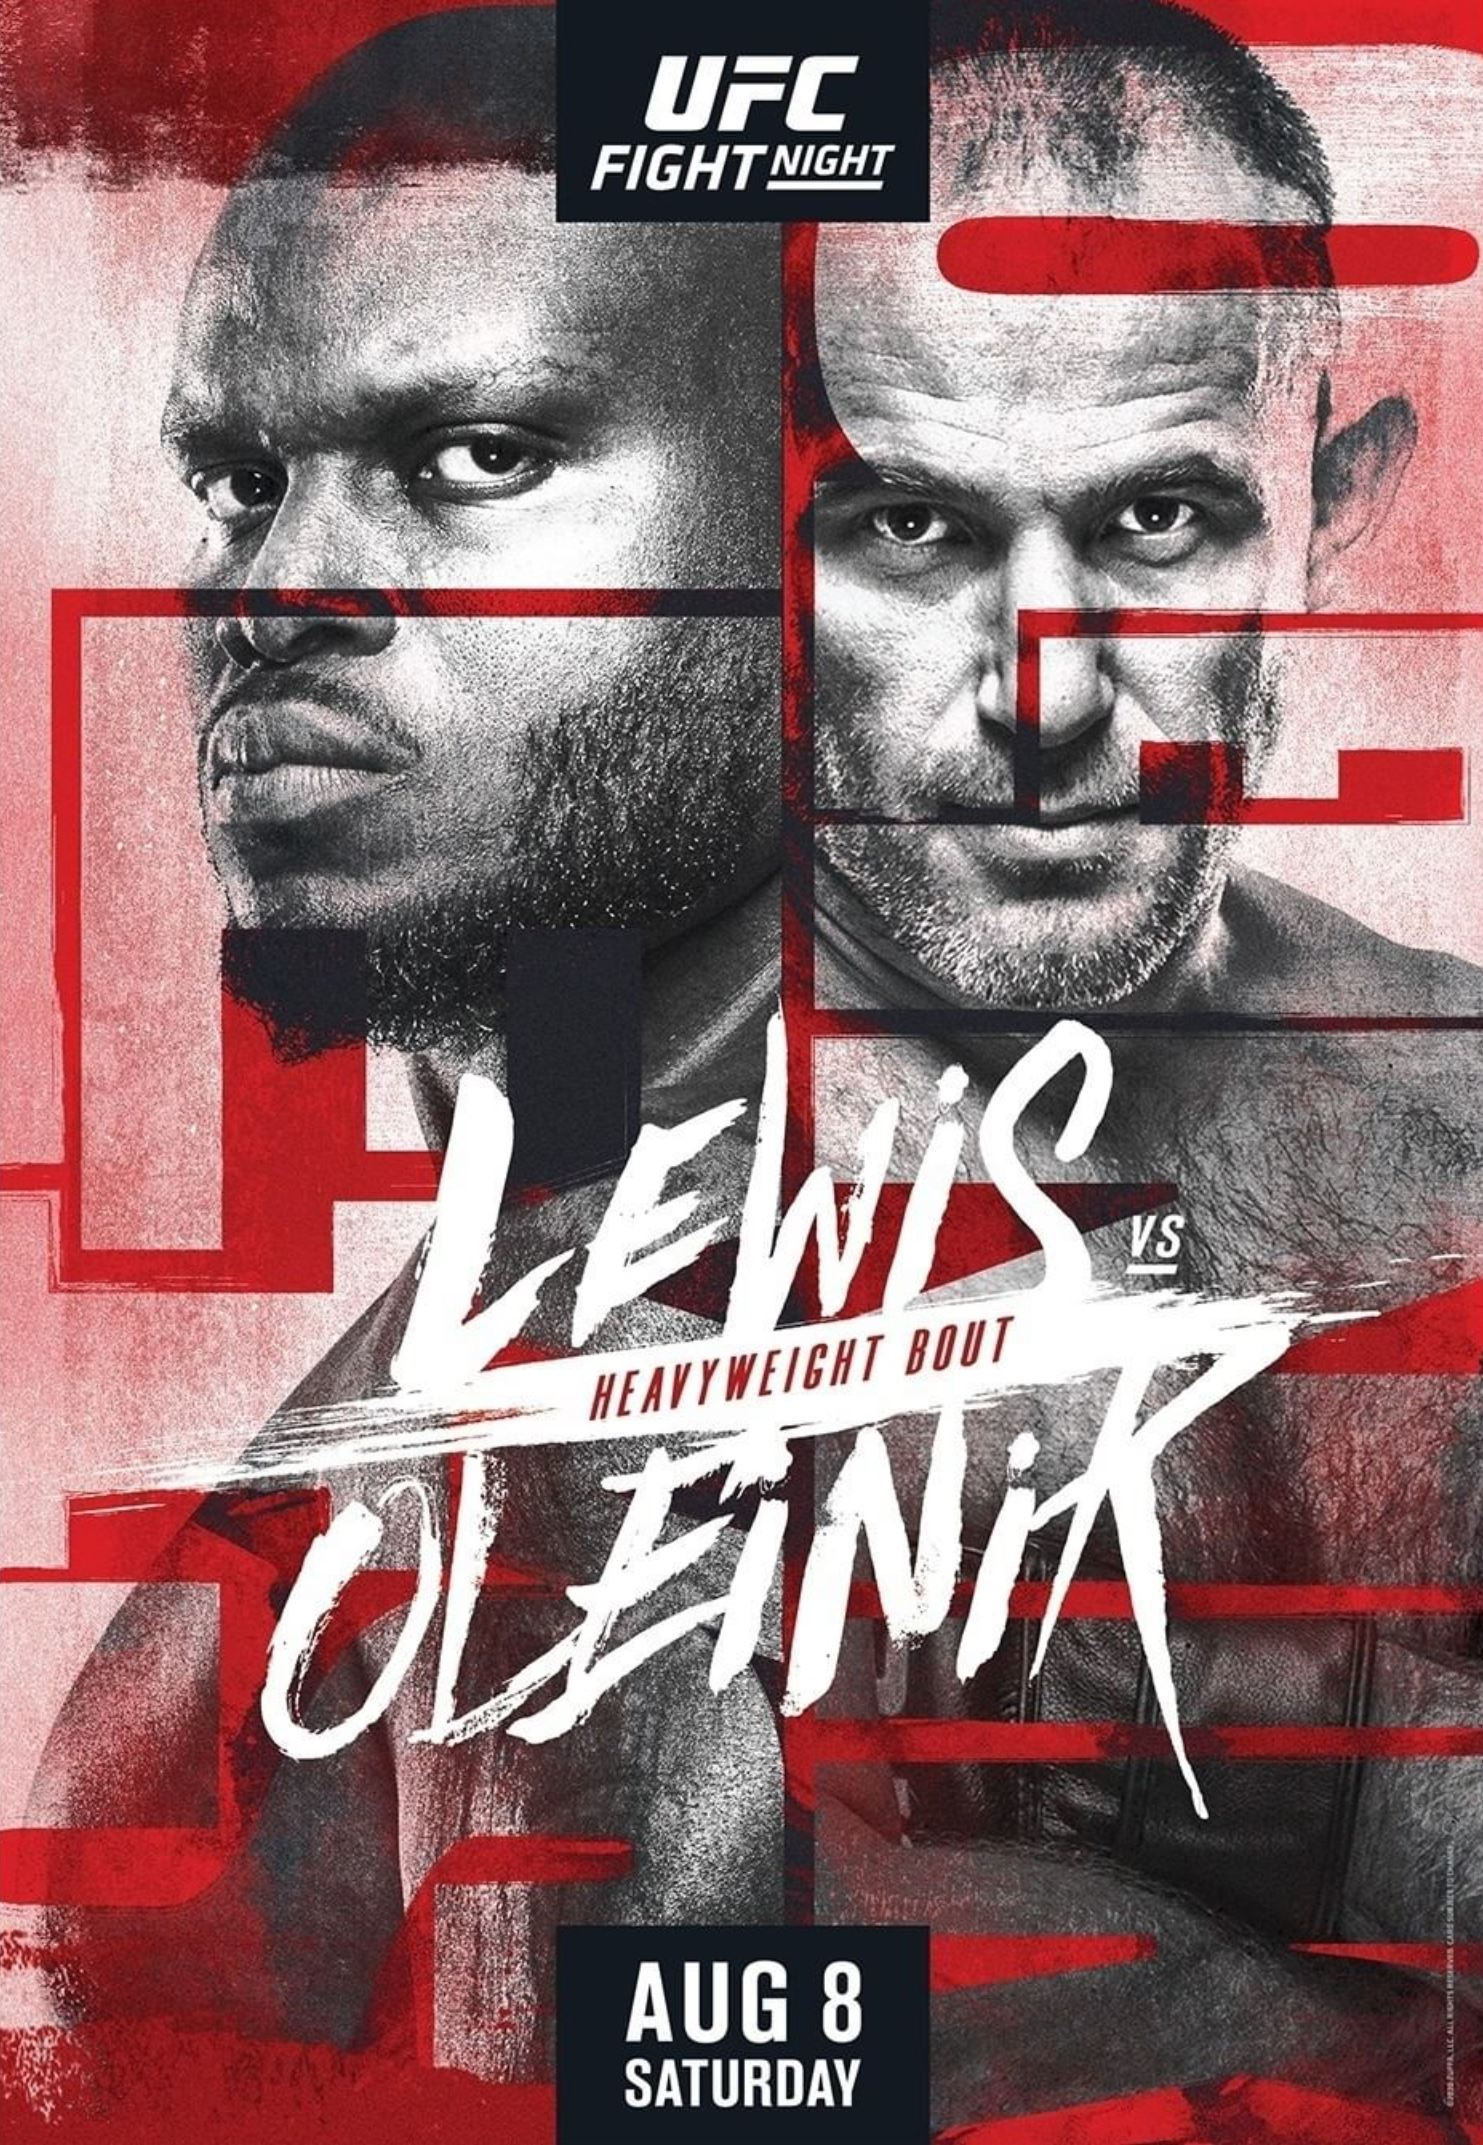 new UFC Fight Night 174 poster